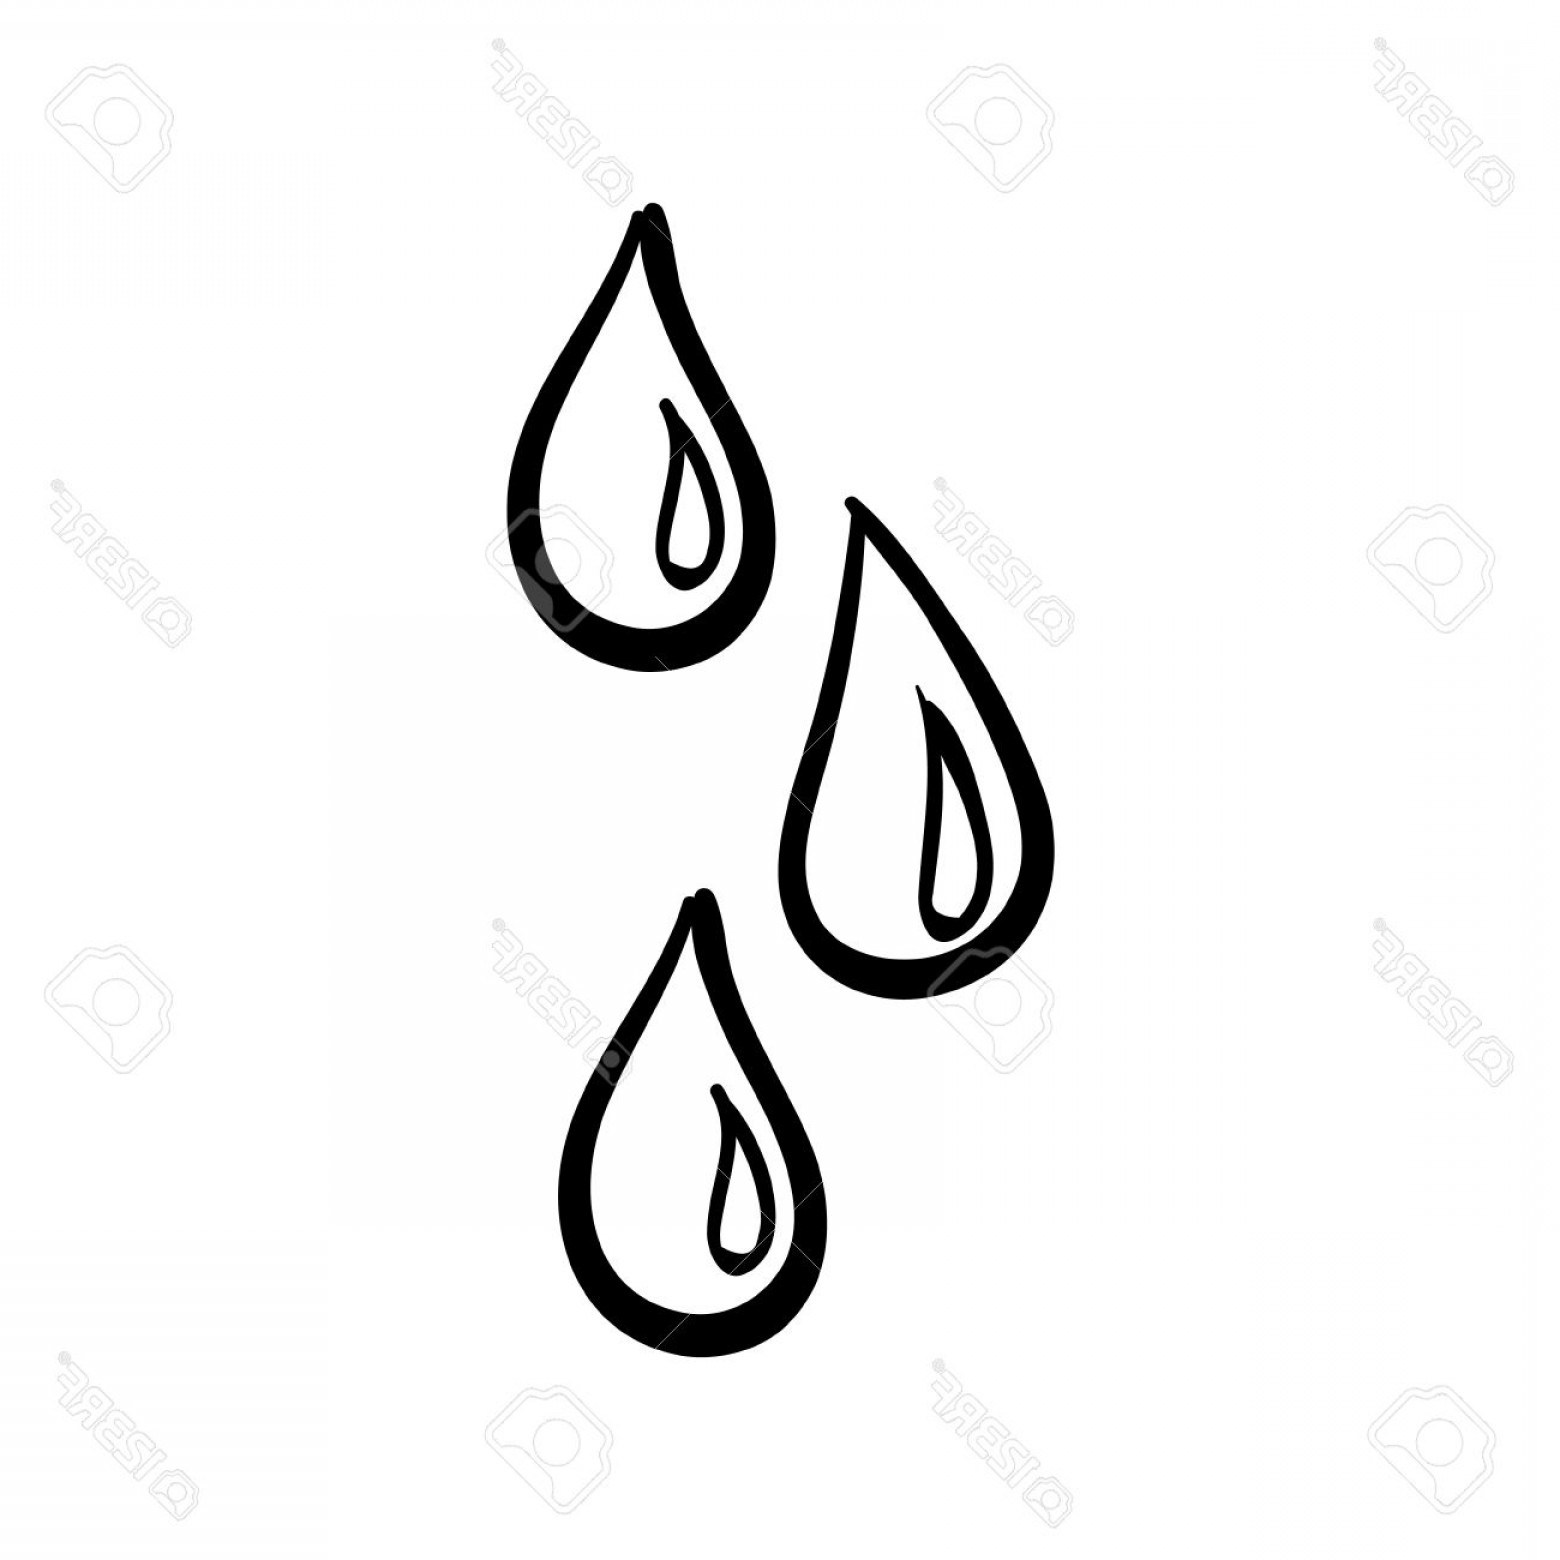 Water drop black and white clipart 7 » Clipart Portal.